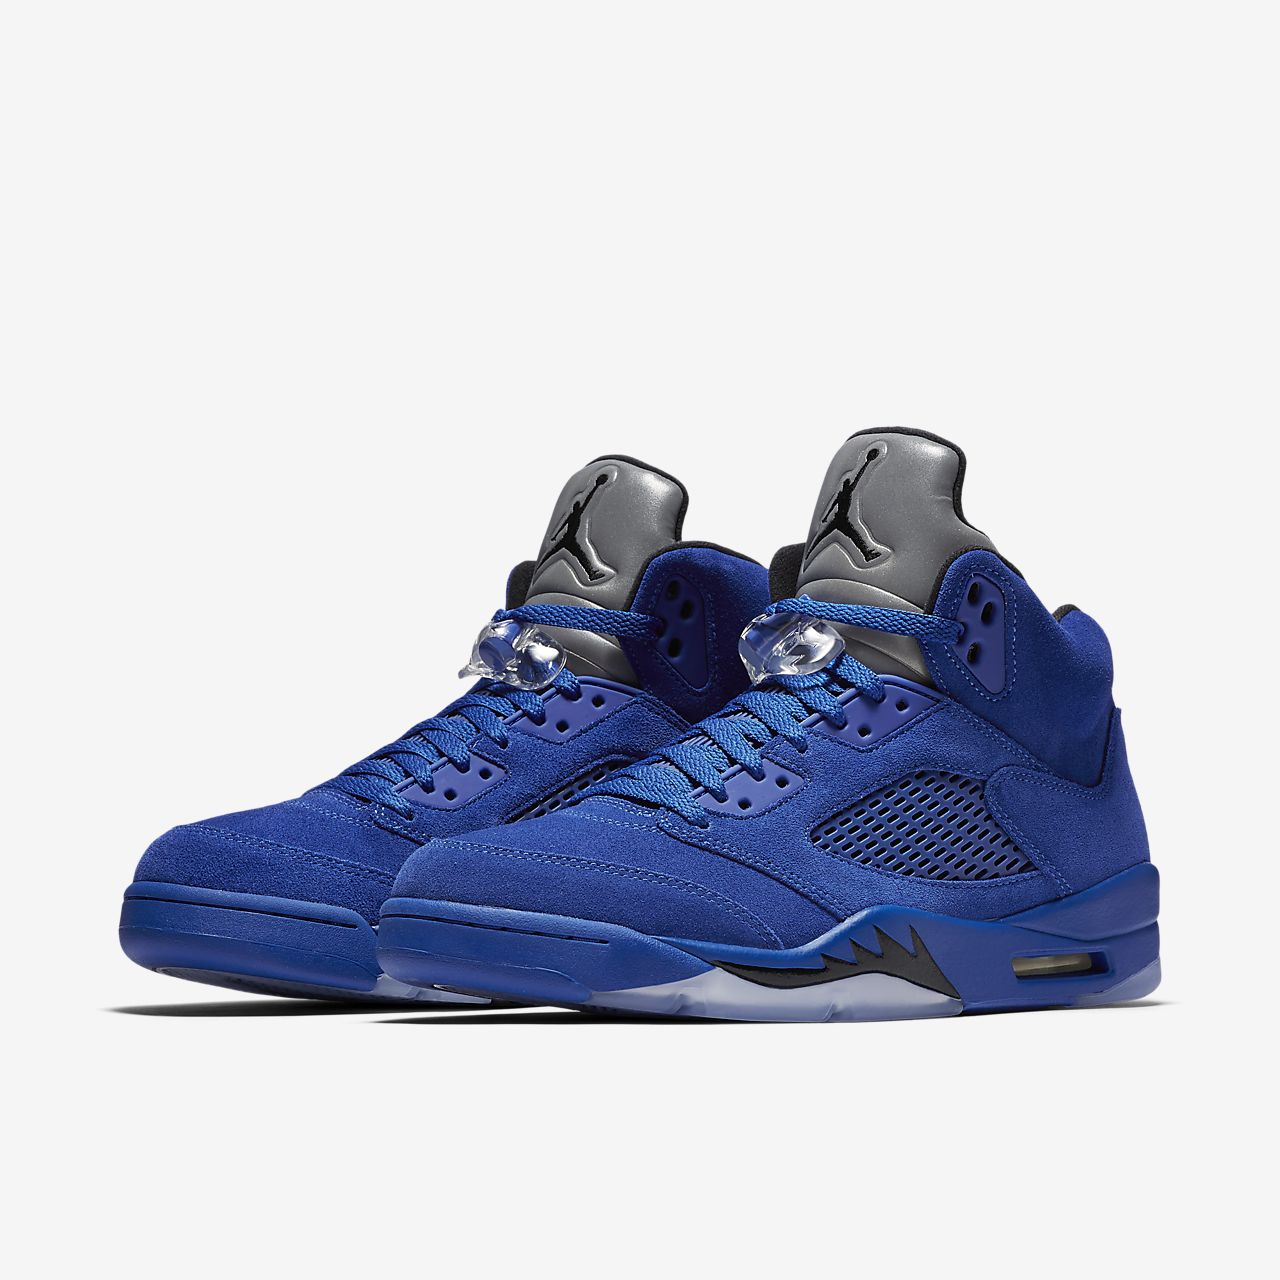 Jordan Shoes & Sneakers () With a legacy dating back to , Nike Air Jordan sneakers have been a cultural staple for decades and continue to provide new styles and innovations alongside retro editions. Show love and respect for the history of flight with a pair of iconic Jordan shoes. Air Jordan 5 Retro. Men's Shoe.